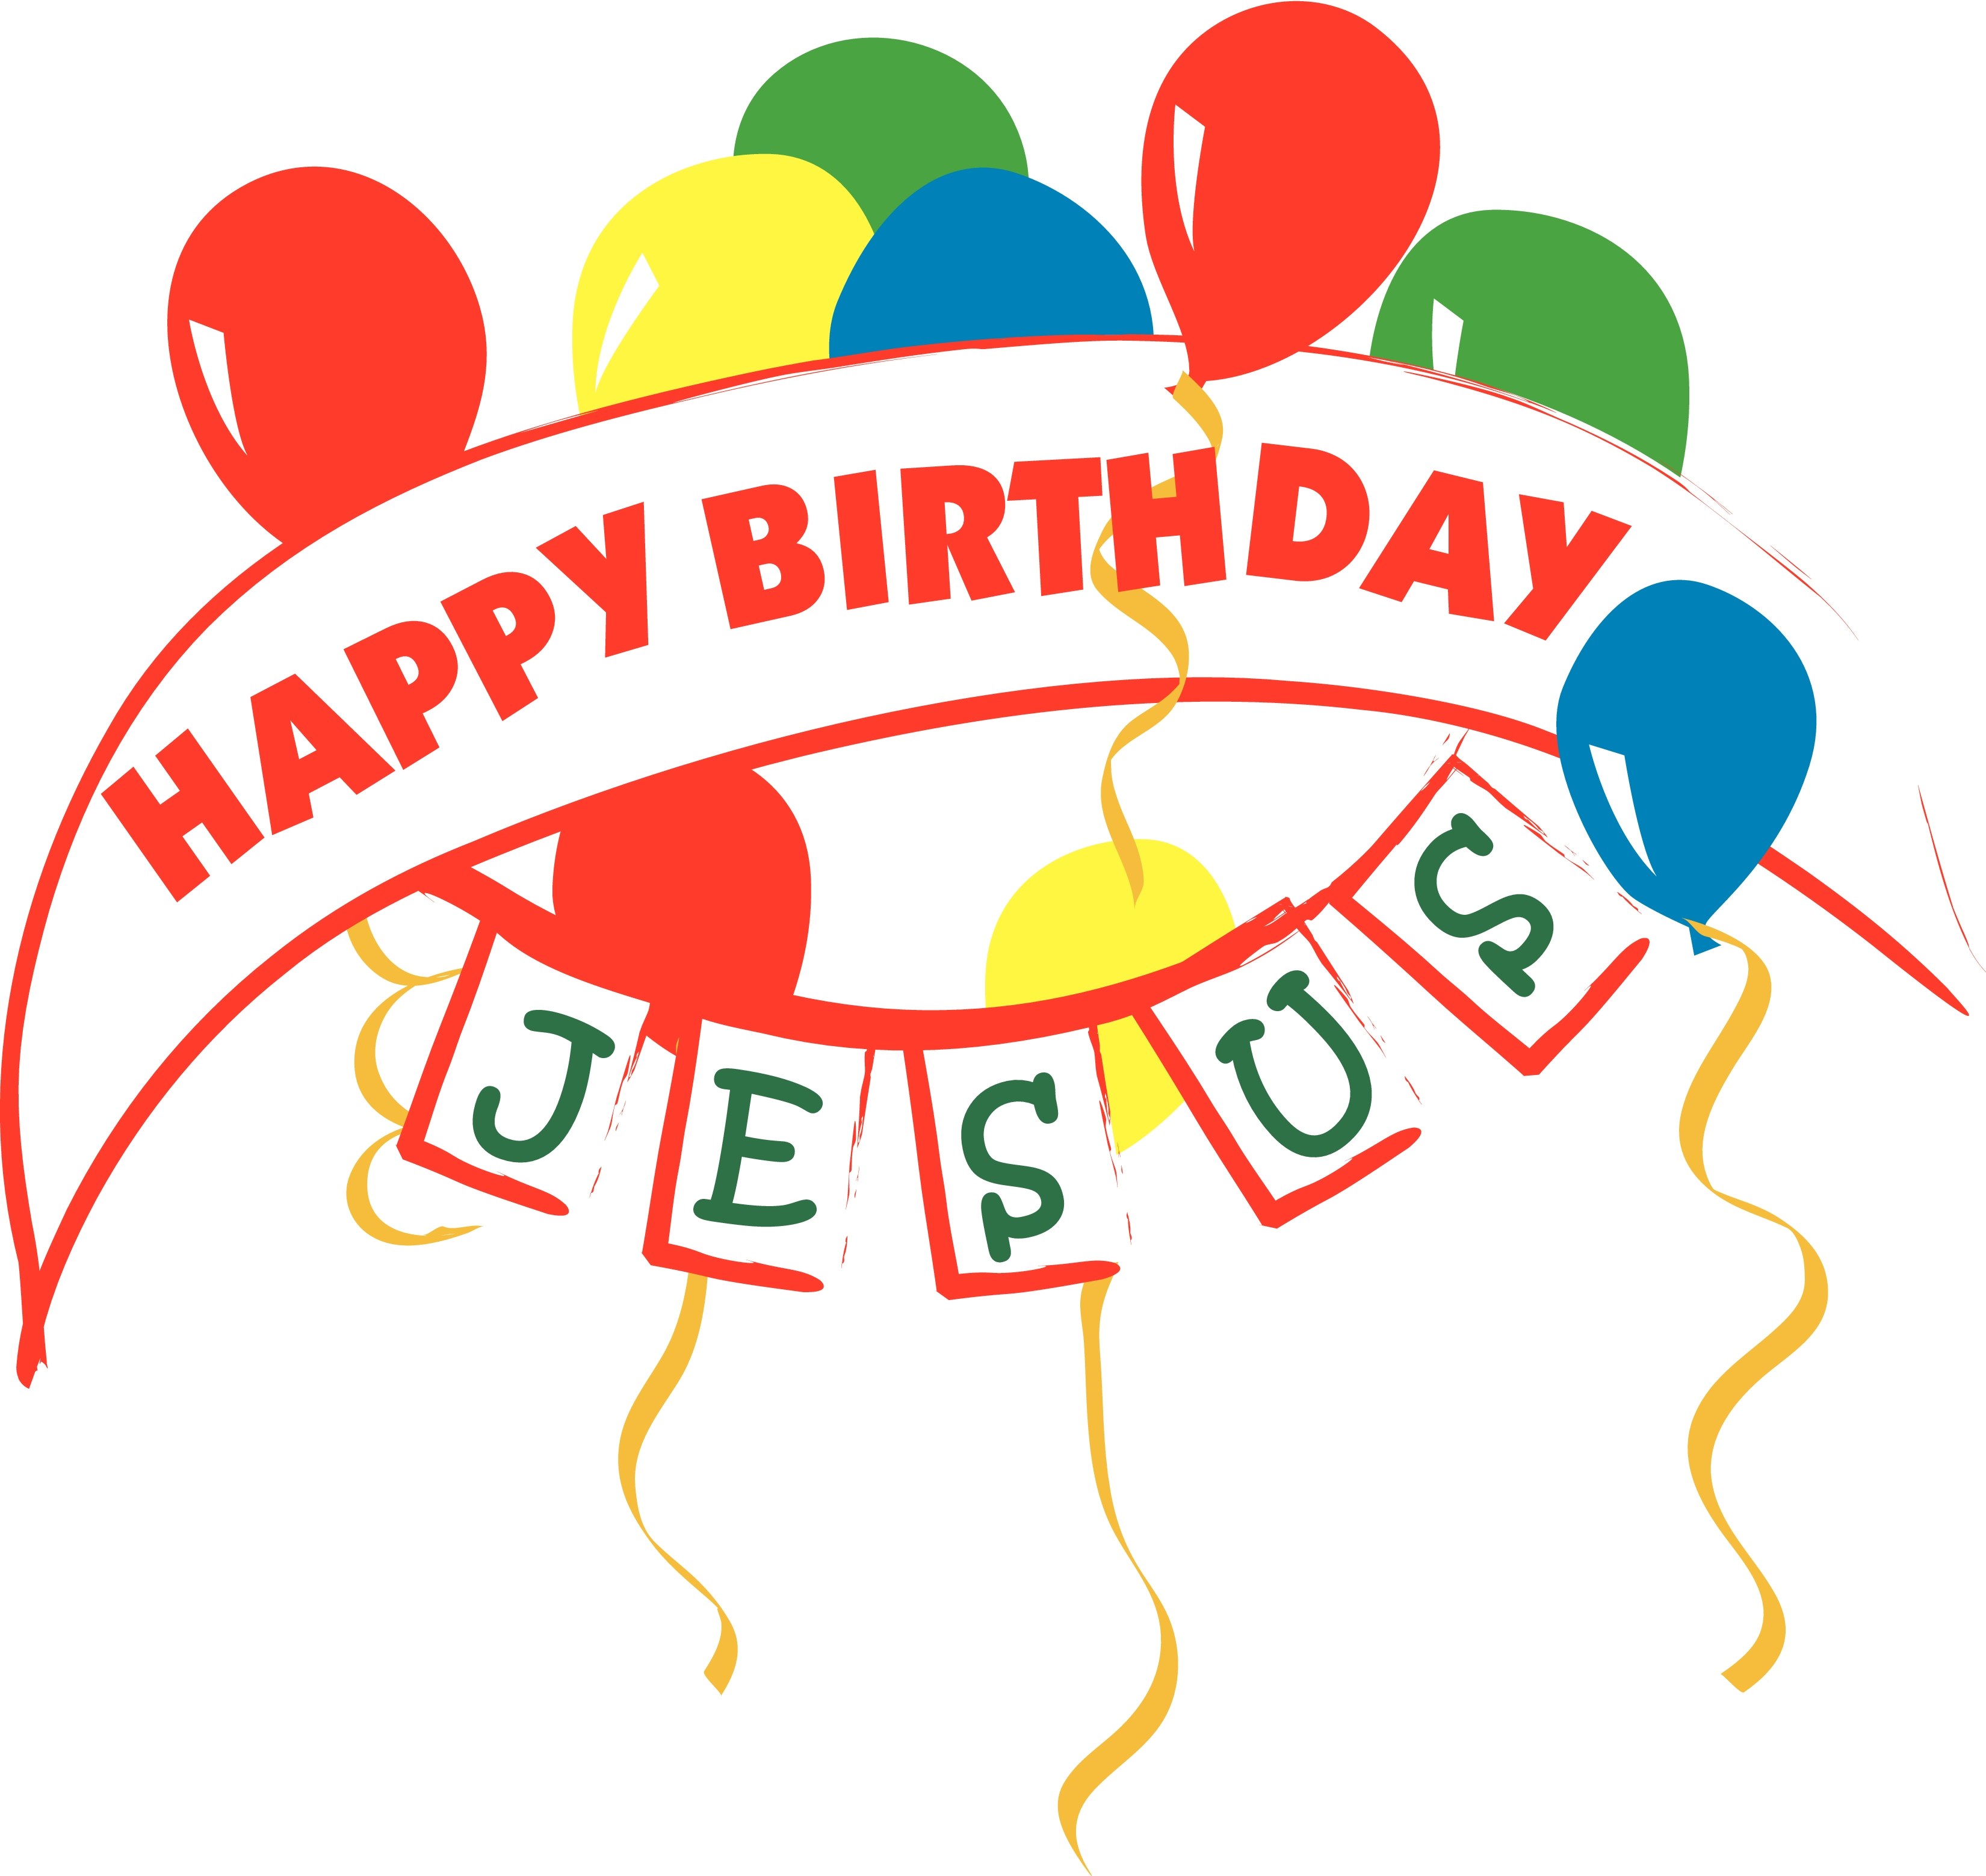 Happy birthday jesus cake clipart png library download Index of /hp_wordpress/wp-content/uploads/2012/12 png library download